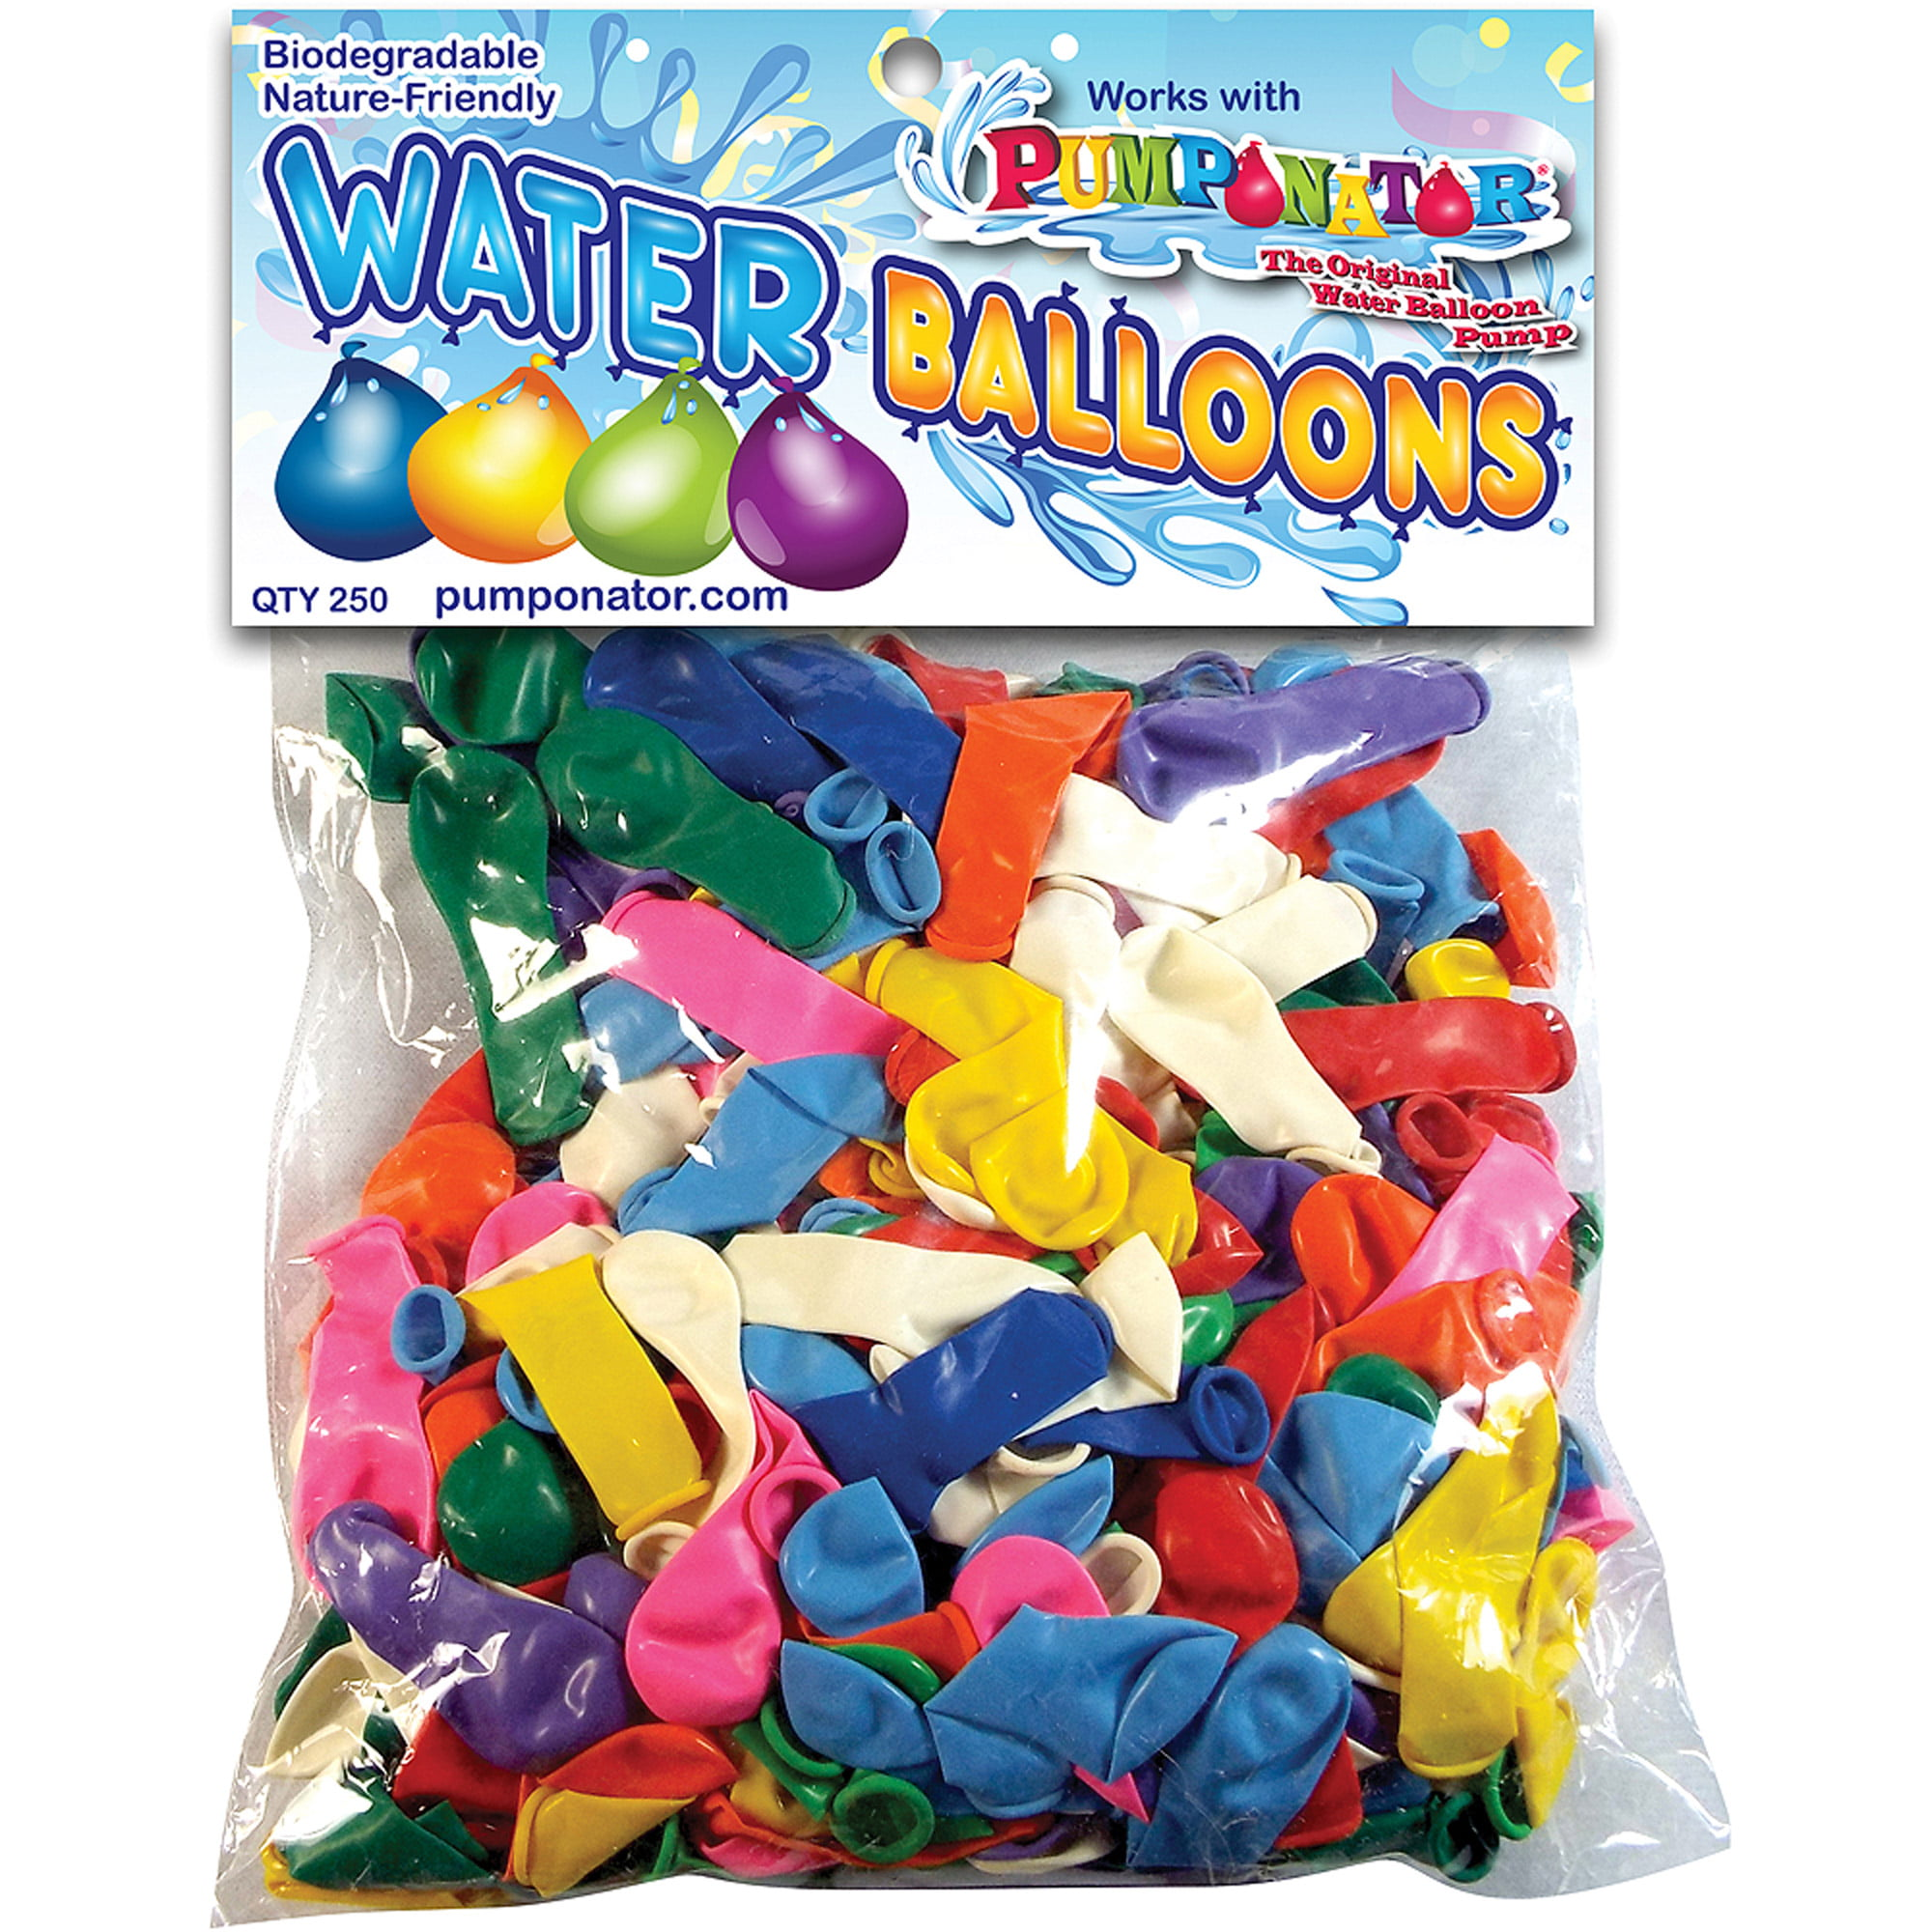 Where can you buy balloon arch kits in delaware - Pumponator 250 Biodegradable Water Balloons